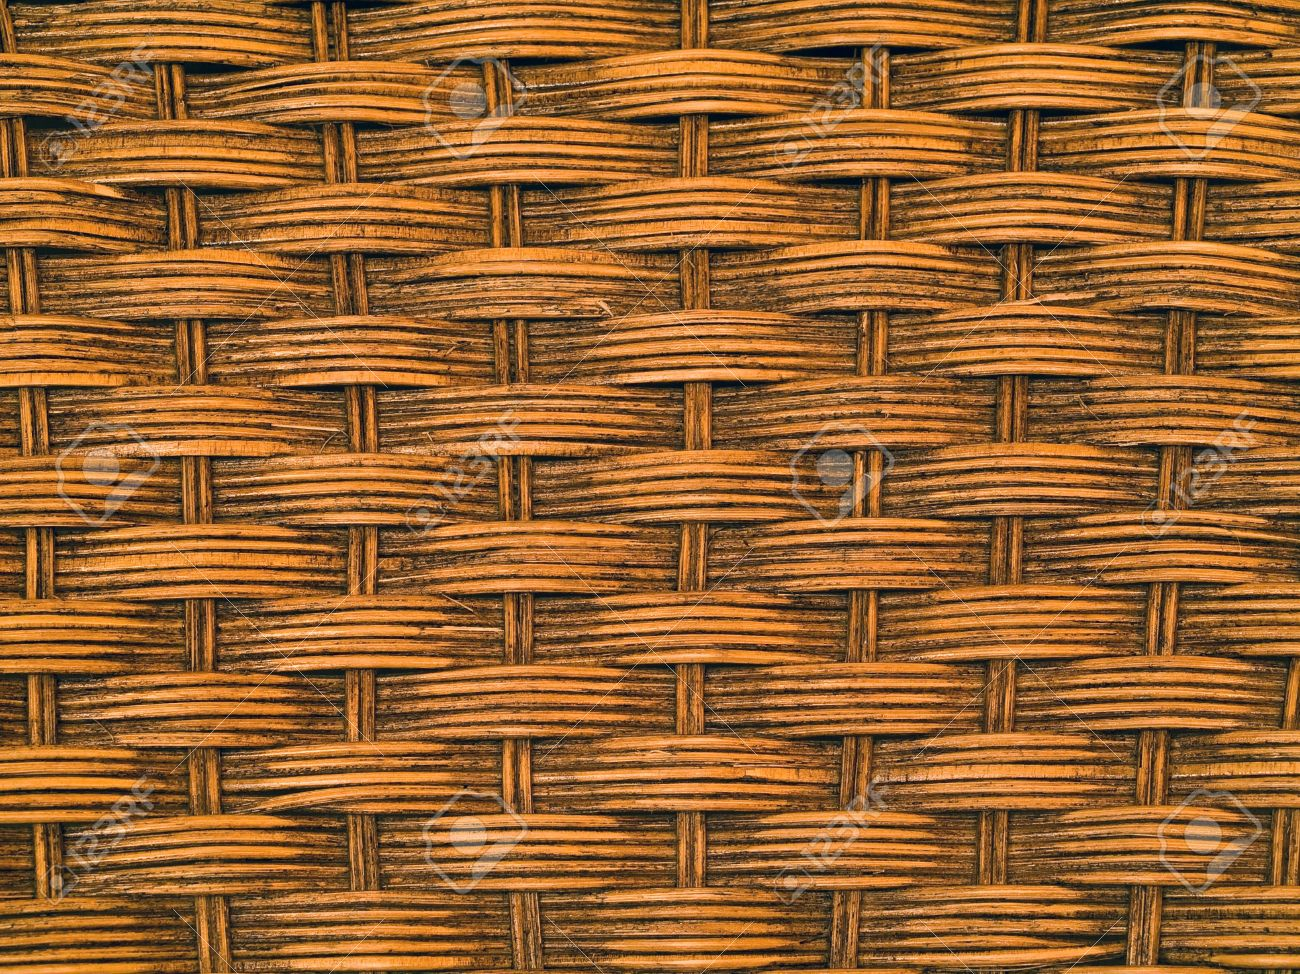 Woven wicker or chair texture for background uses Stock Photo - 6338728